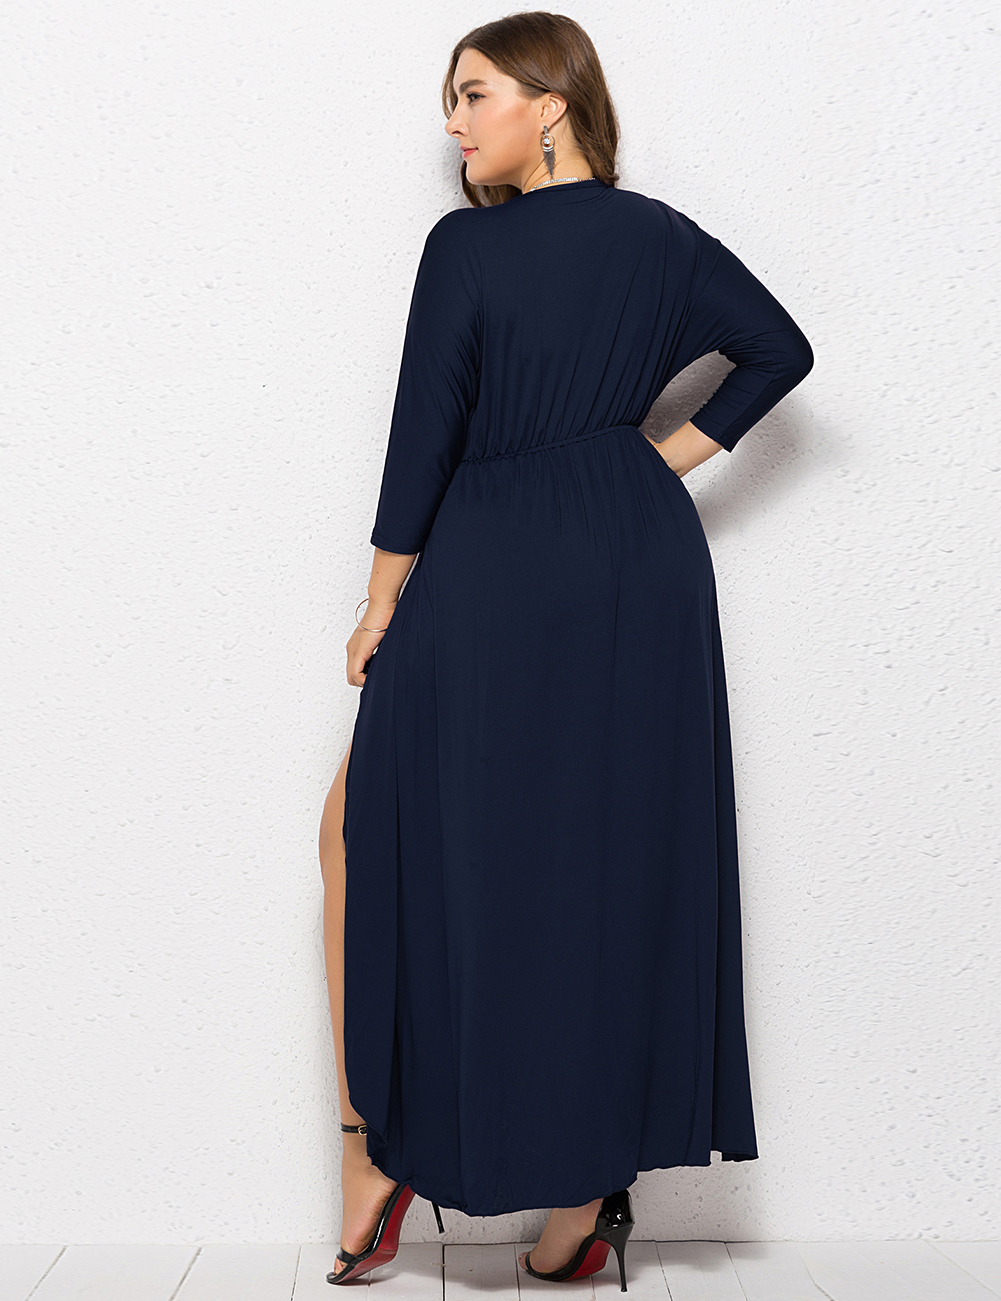 //cdn.affectcloud.com/feelingirldress/upload/imgs/2019-09-01/VZ191201-BU2/VZ191201-BU2-2.jpg